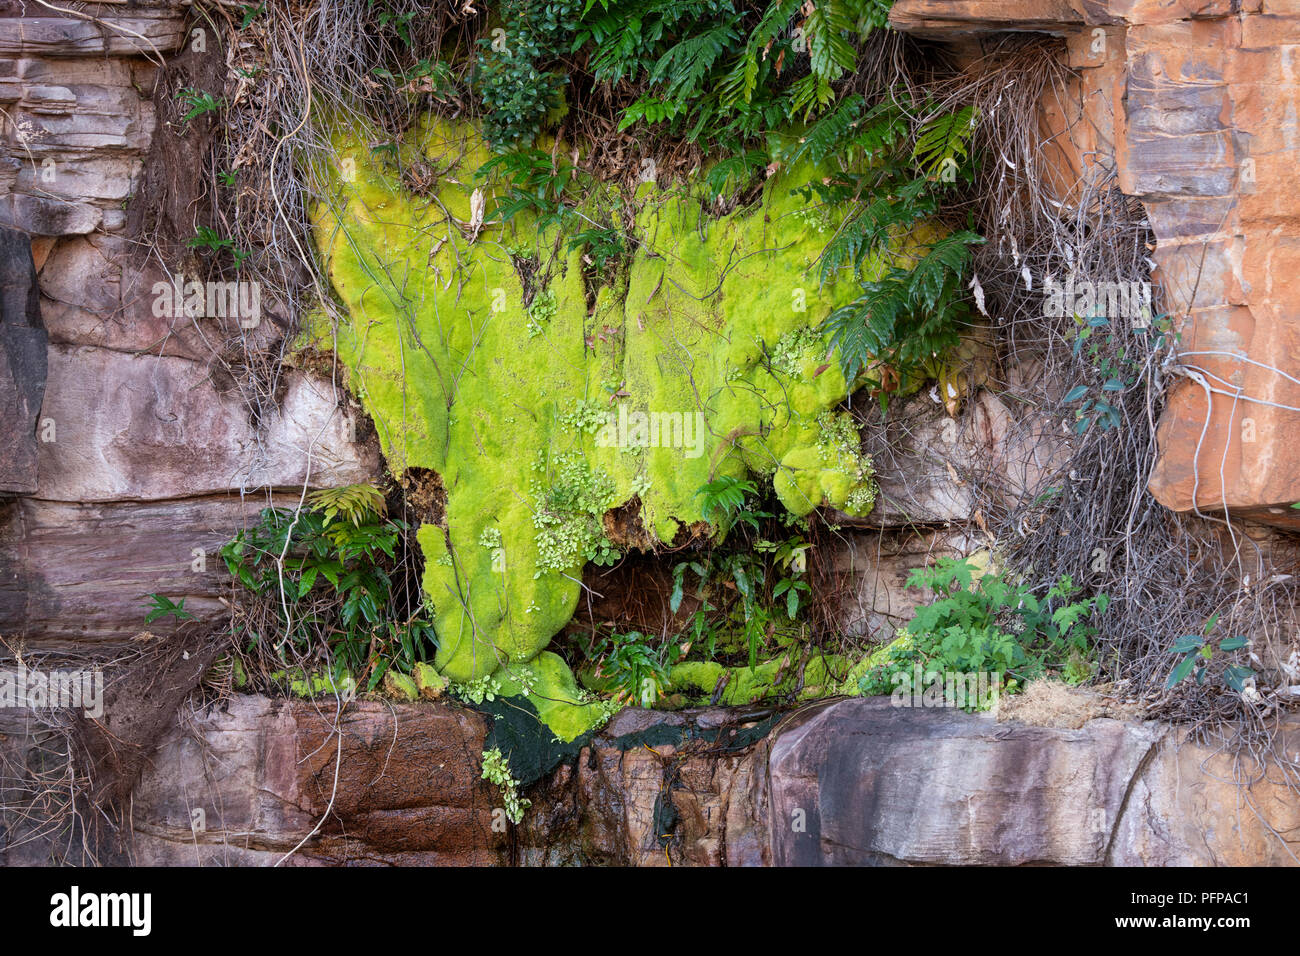 Australia, Western Australia, King George River, Koolama Bay. Micro climate with moss, ferns, etc. growing on the rocky cliffs. - Stock Image